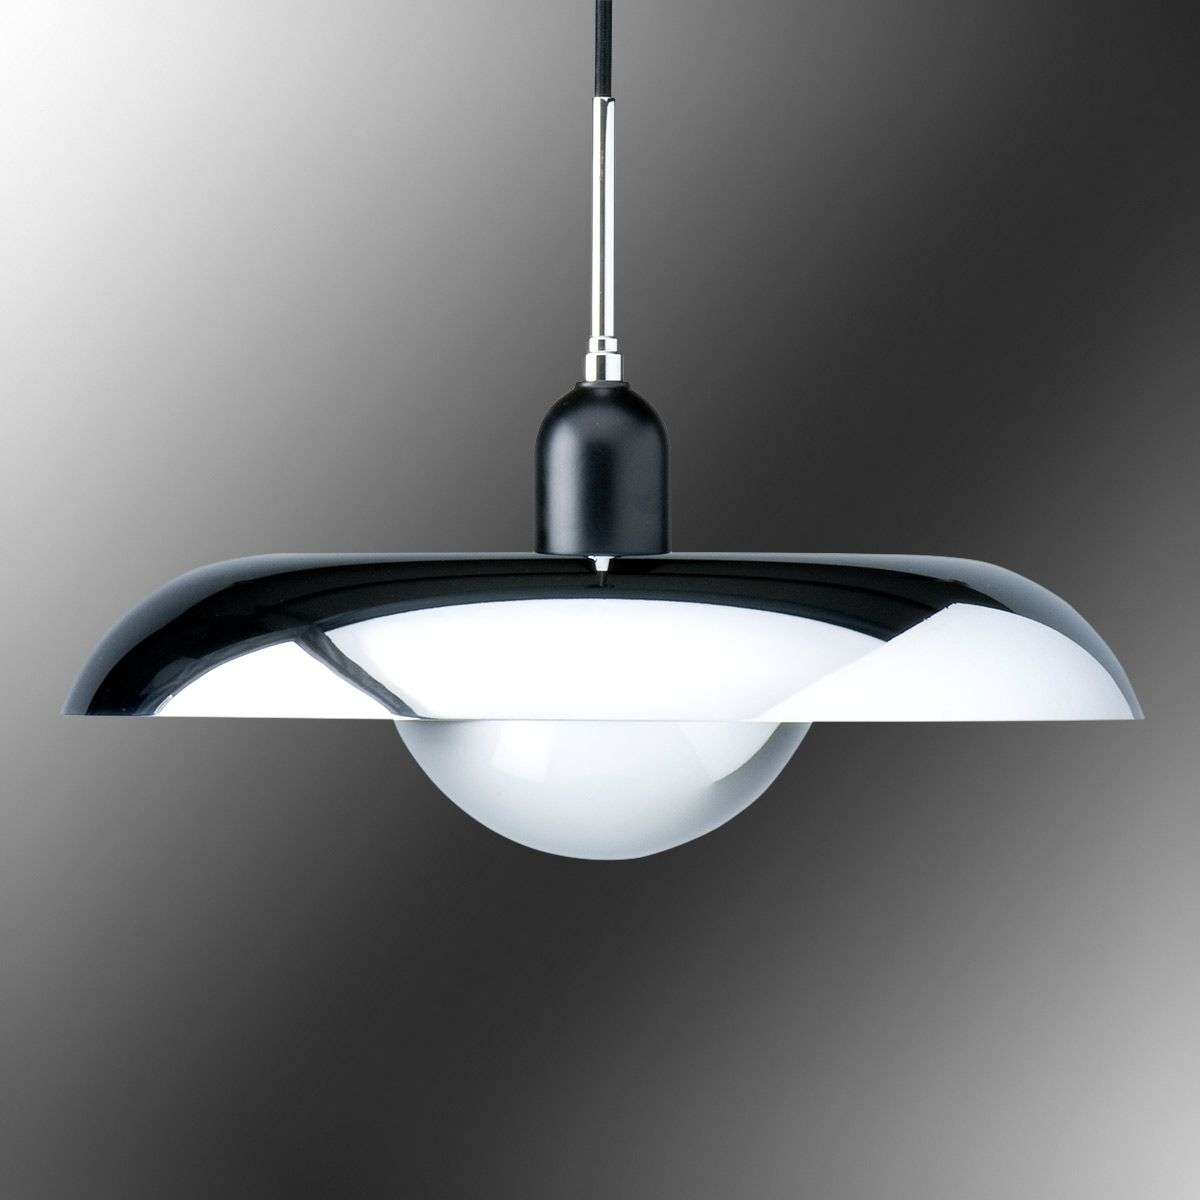 timeless lighting. Timeless RA Designer Pendant Light, Chrome-7589007-31 Lighting